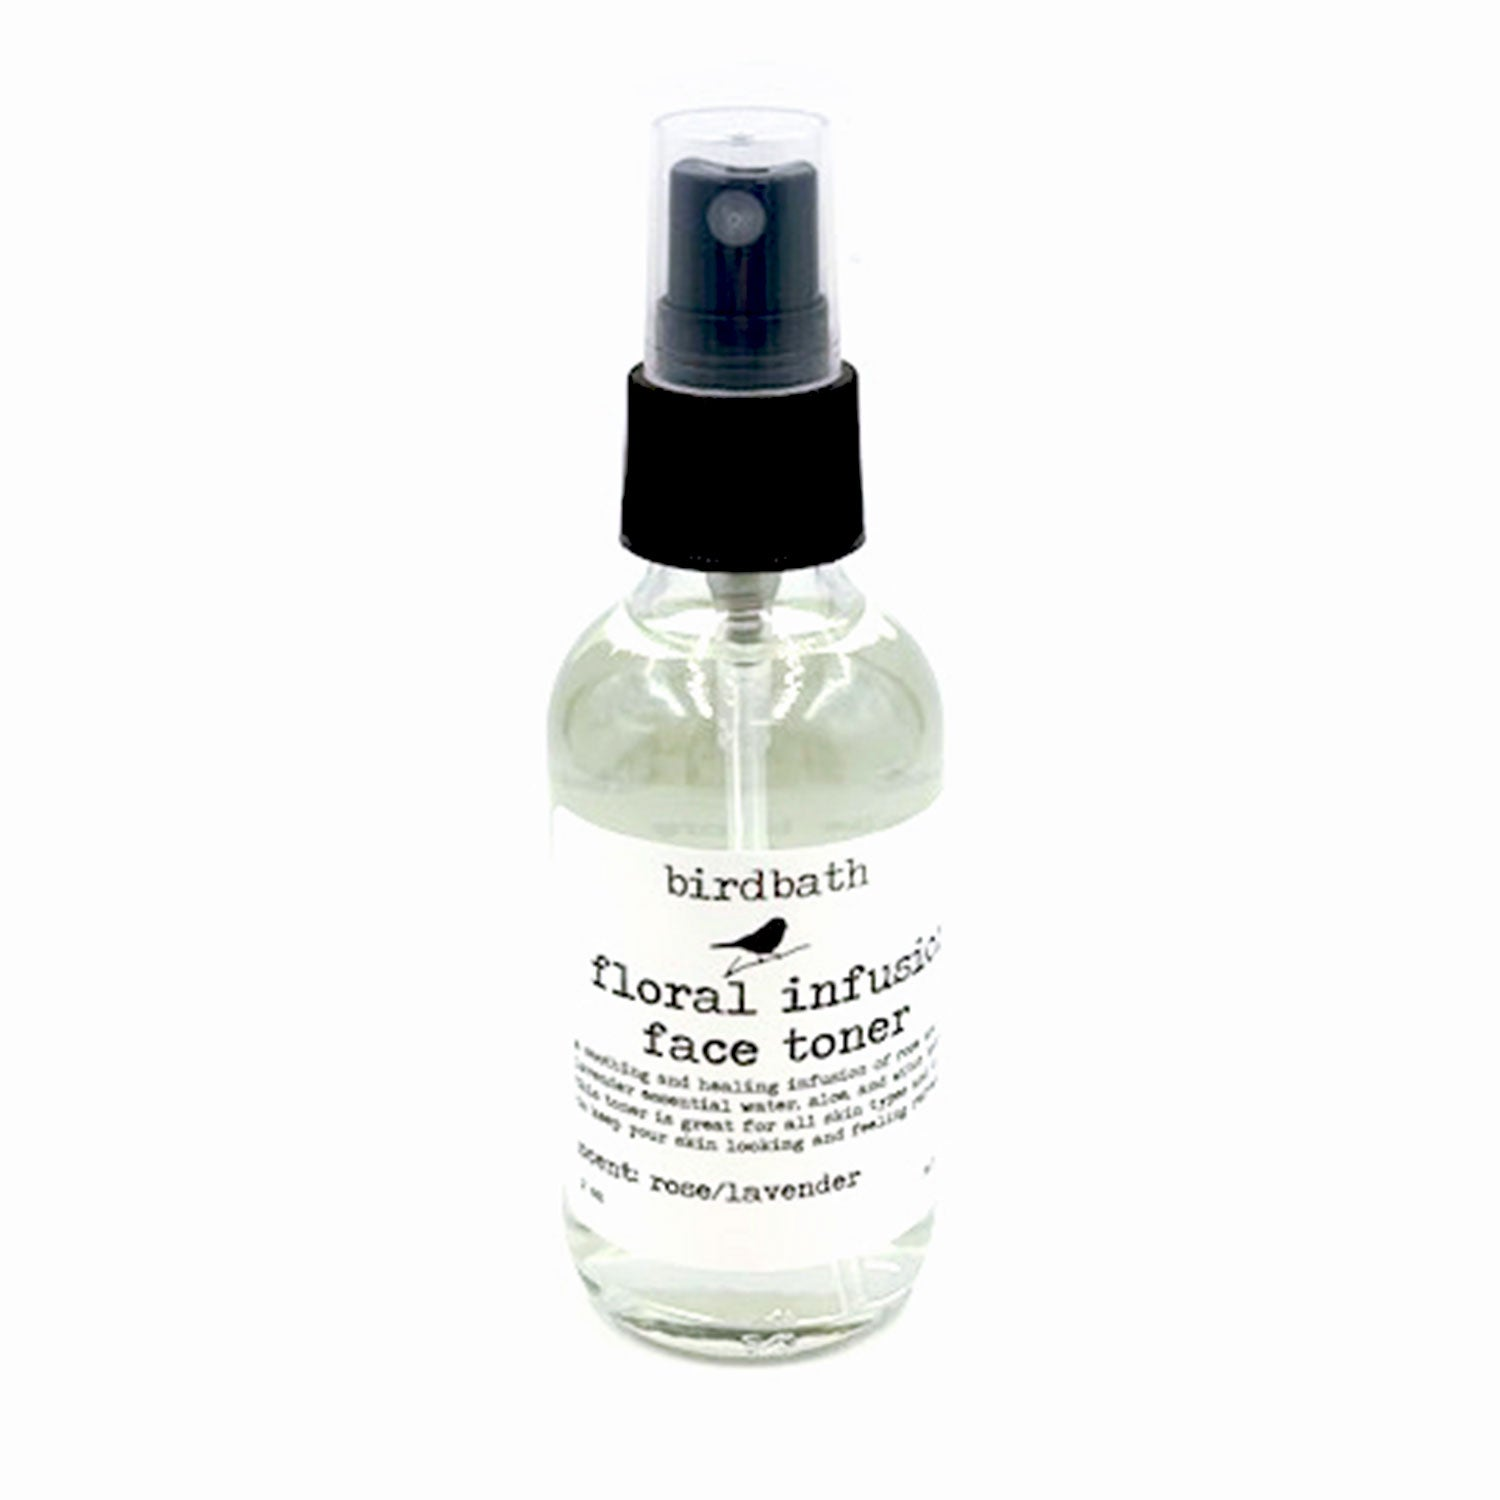 Floral Infusion Face Toner - birdbath body treats